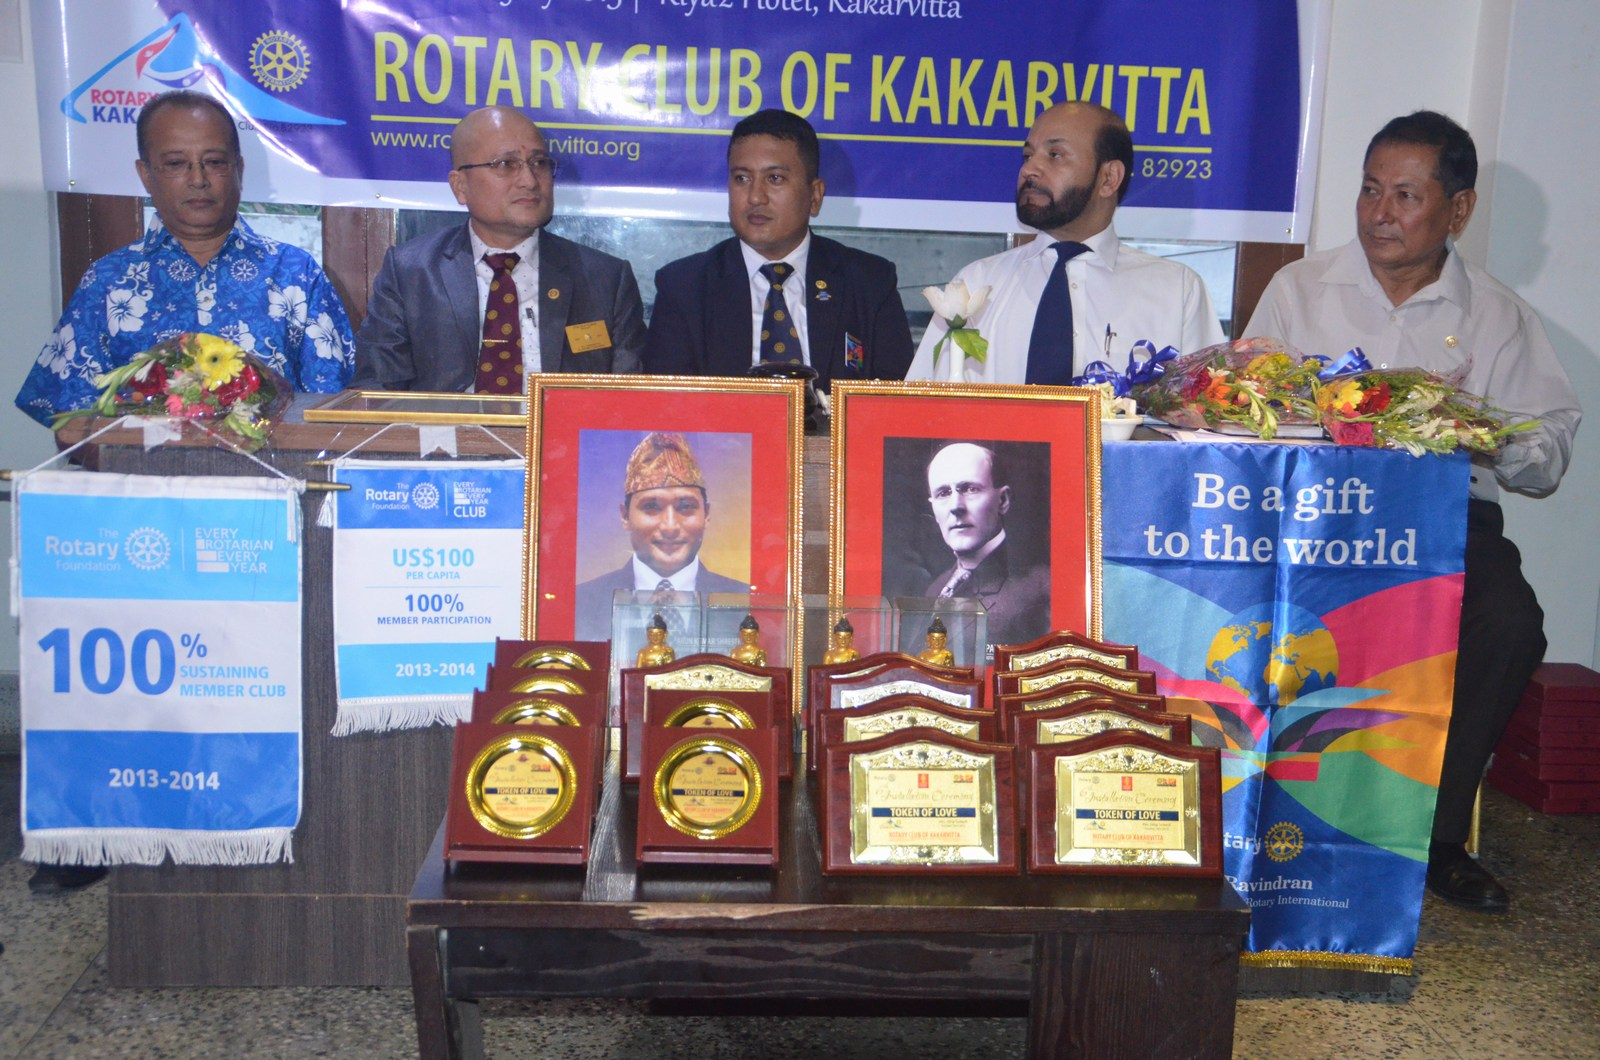 6th Installation Ceremony 2015 16 Rotary Club Of Kakarvitta 3